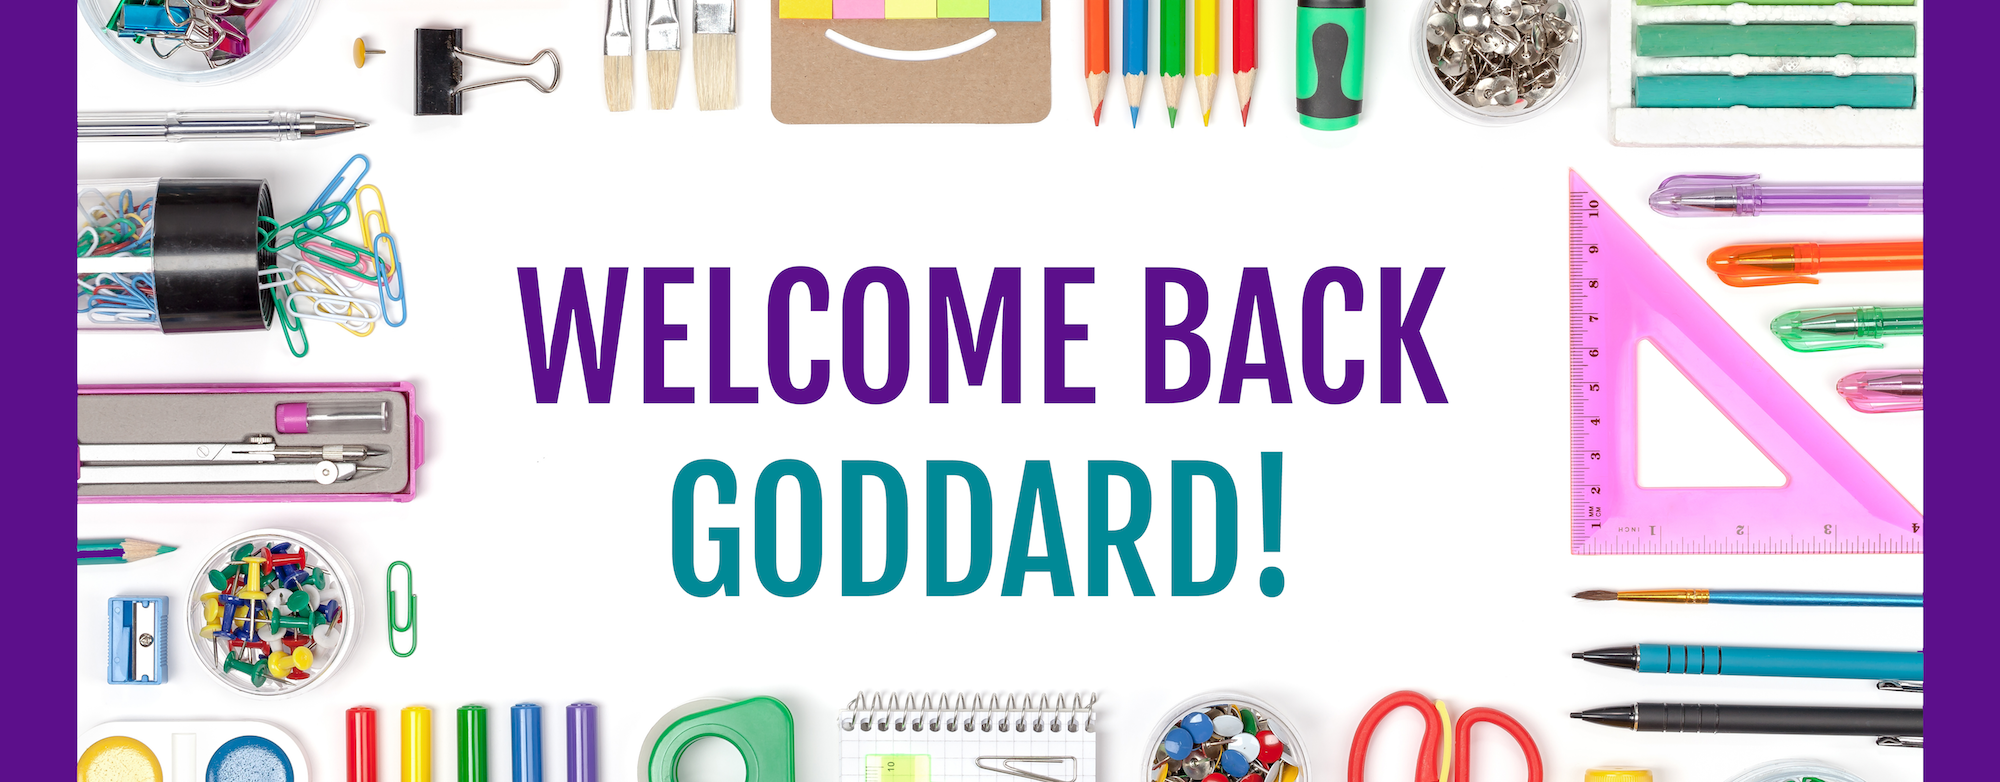 Welcome Back Goddard - School Supplies